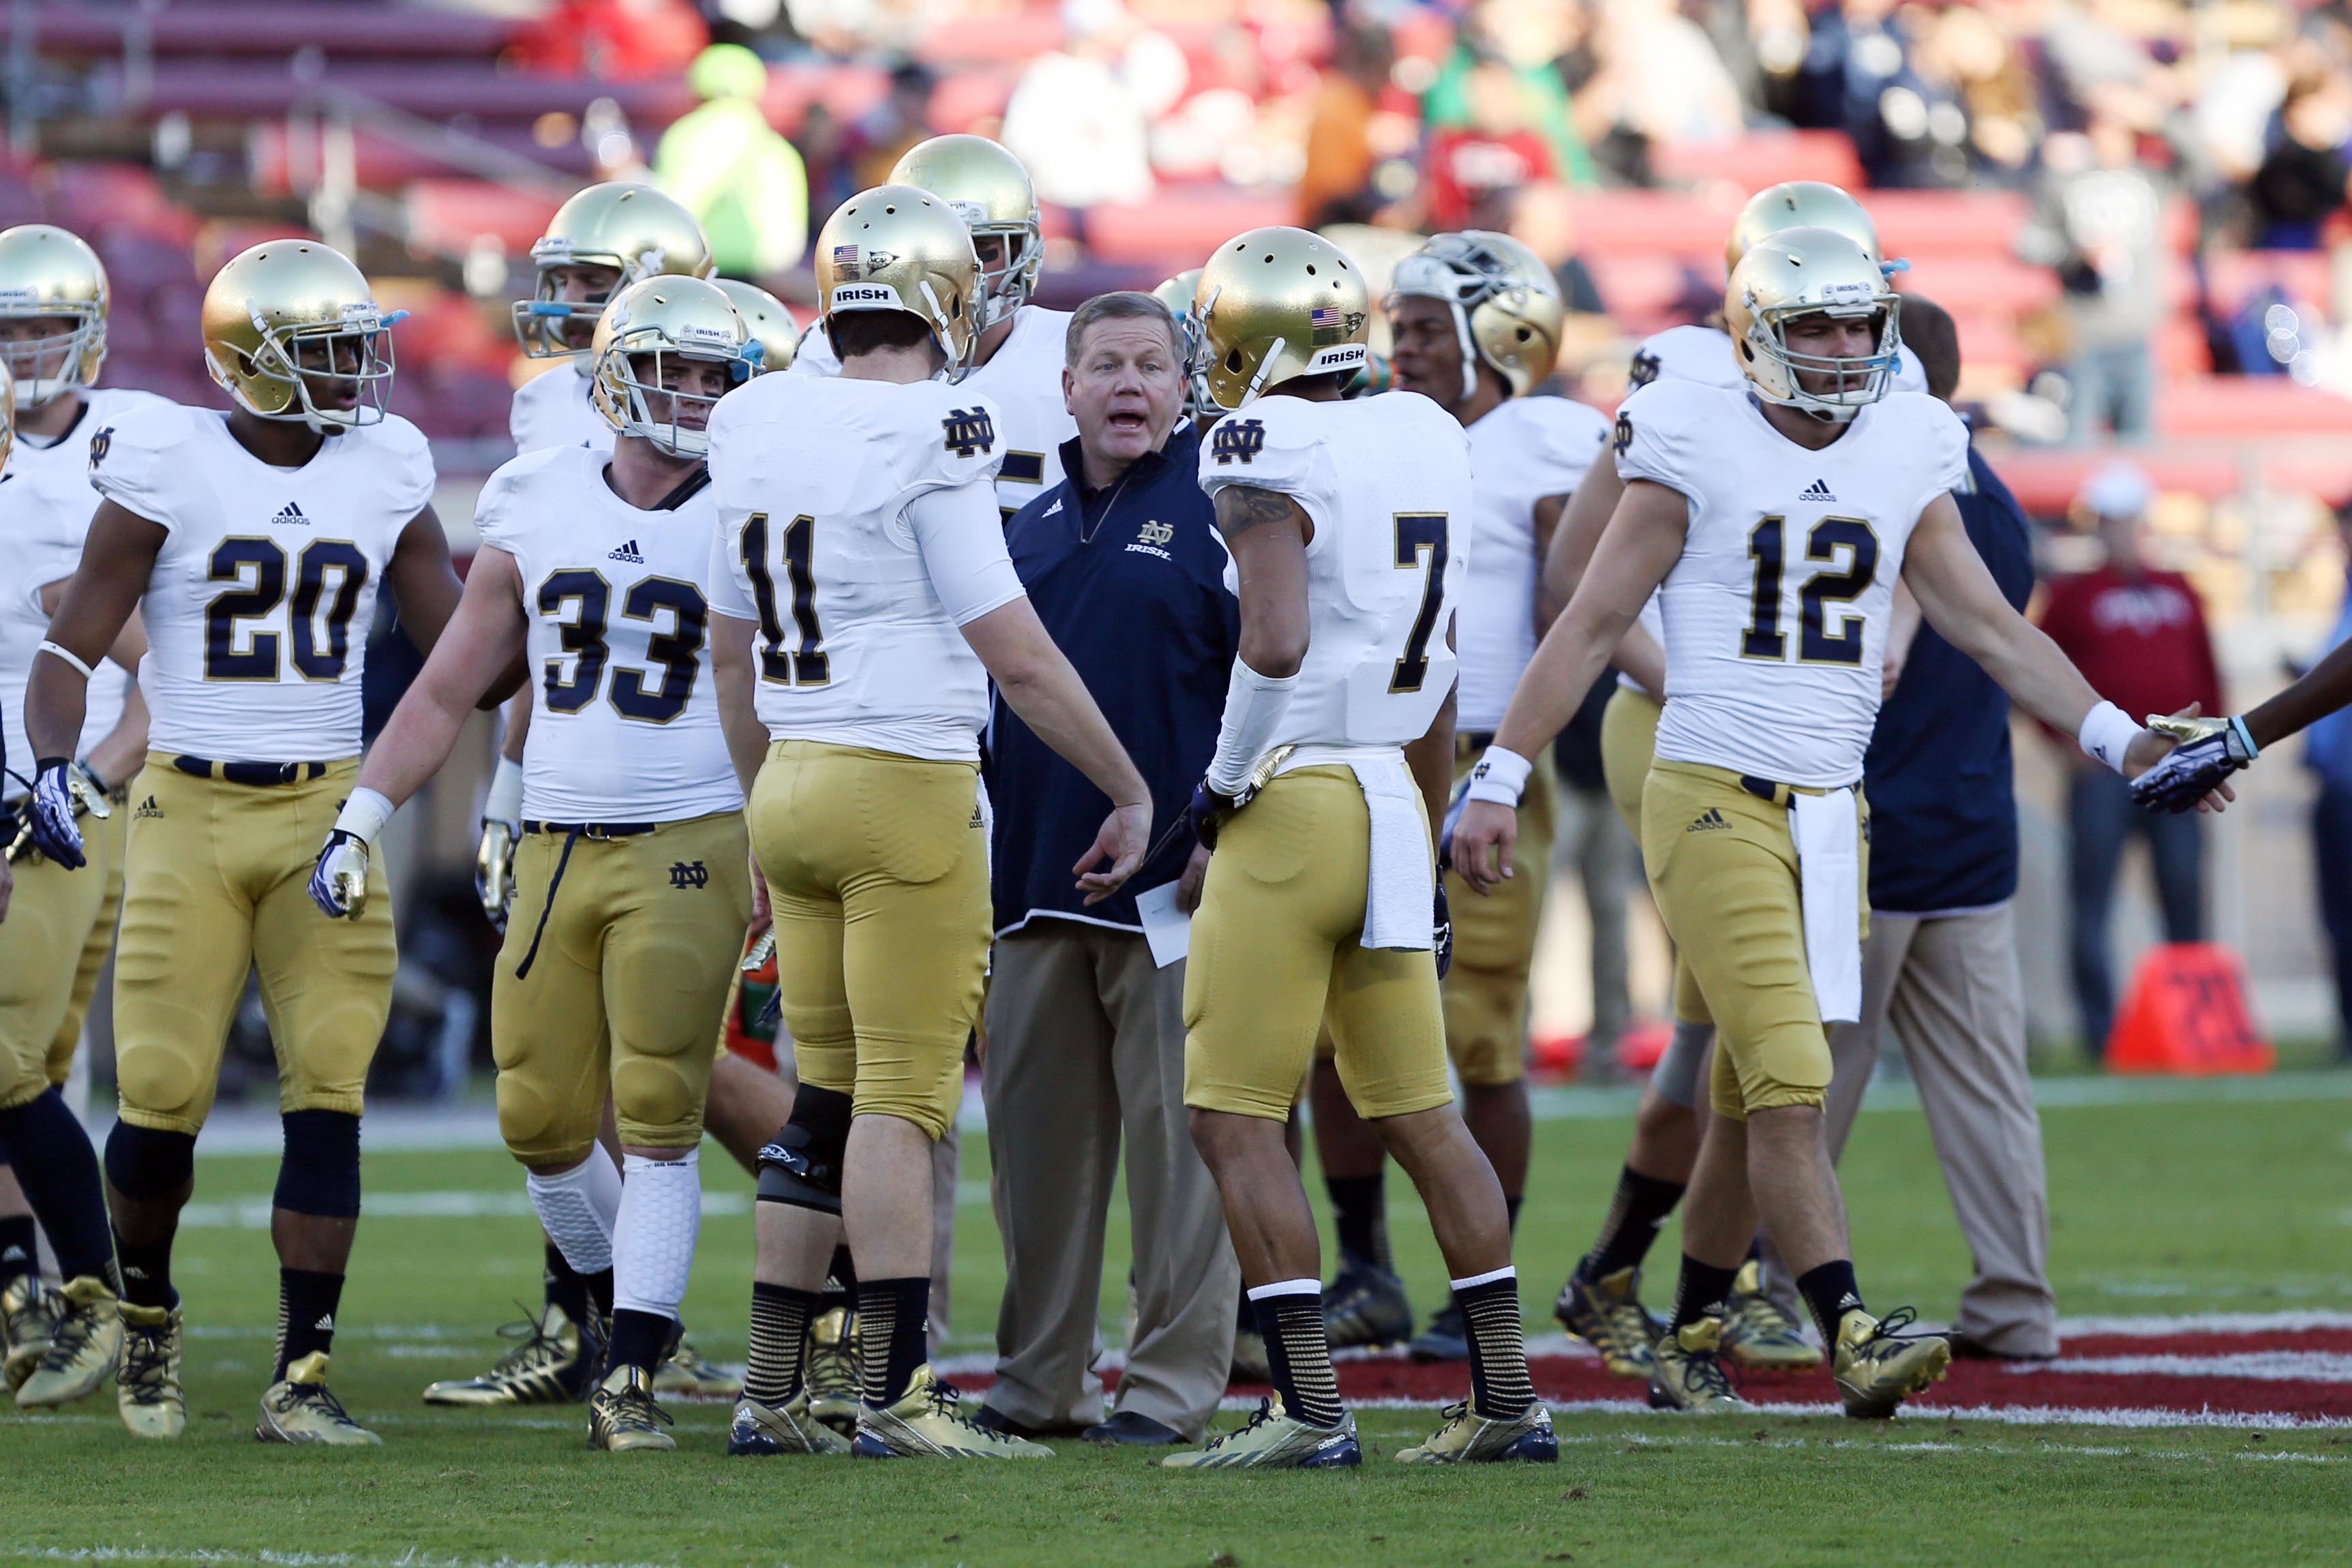 Notre Dame to Citrus Bowl, Purdue plays in Foster Farms Bowl